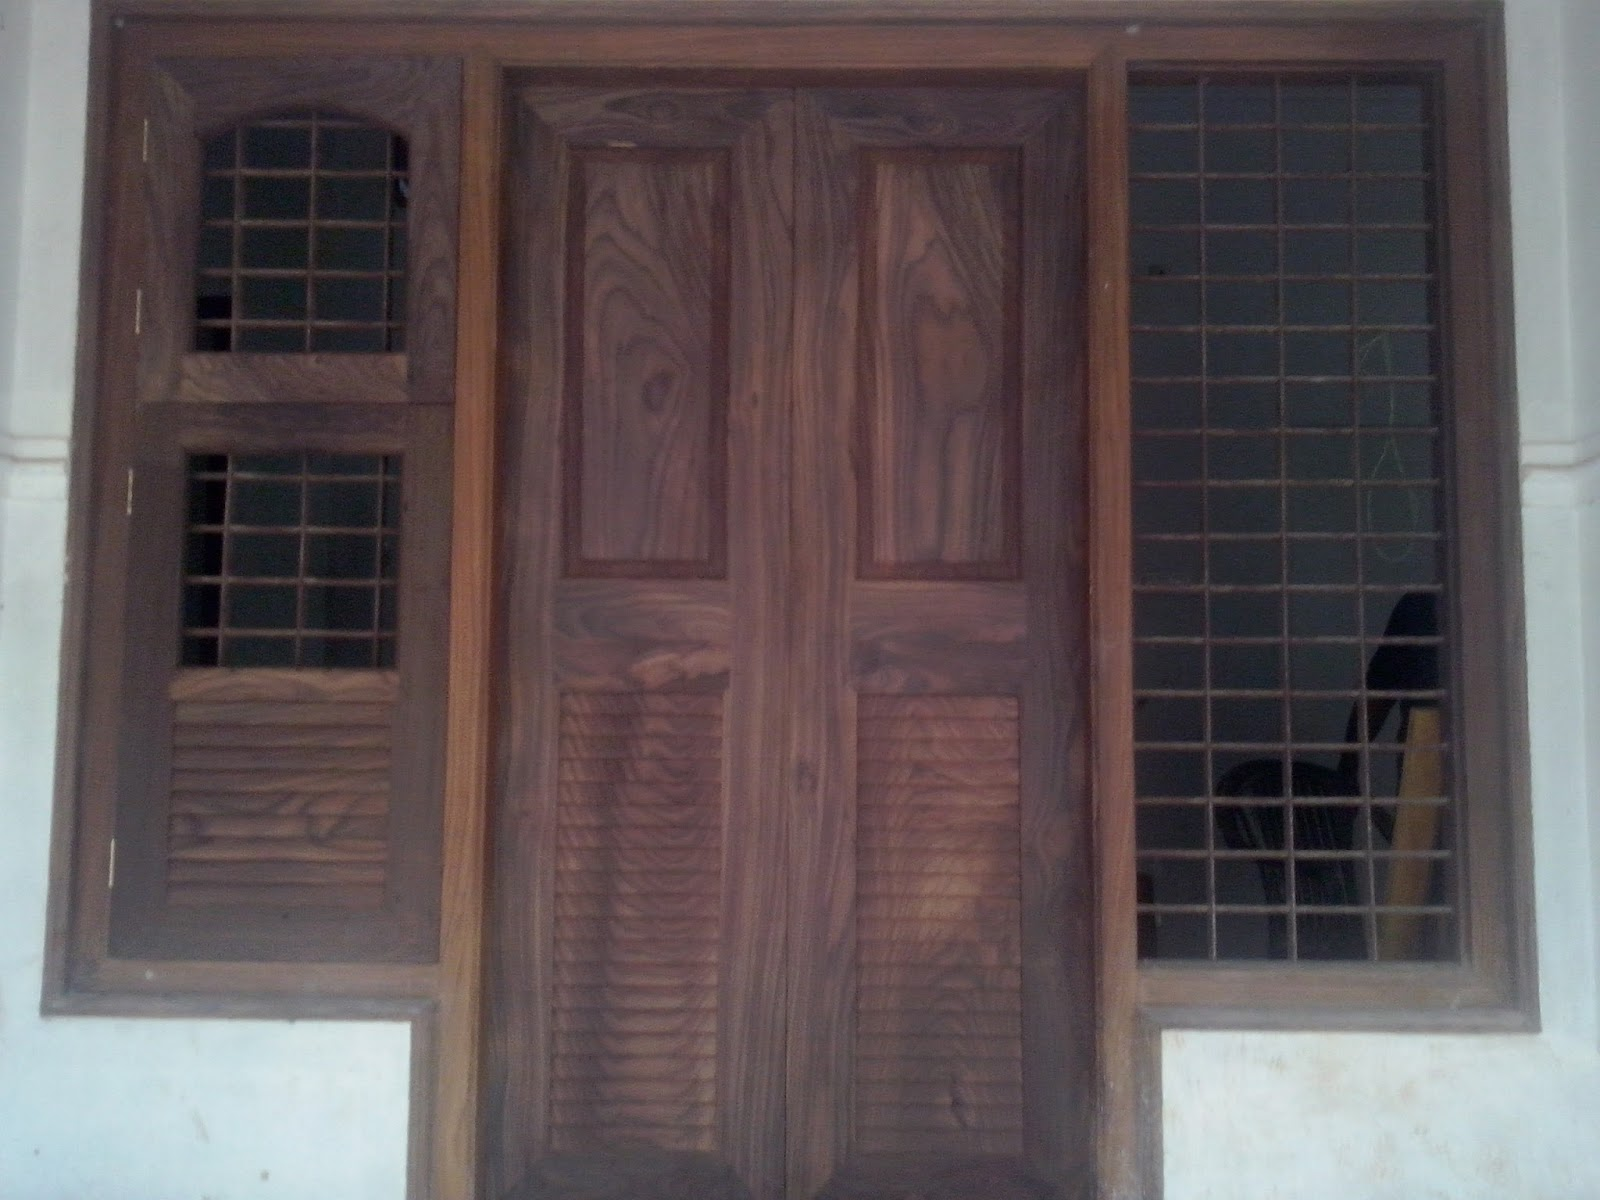 Kerala style carpenter works and designs front entrance for Entrance double door designs for houses